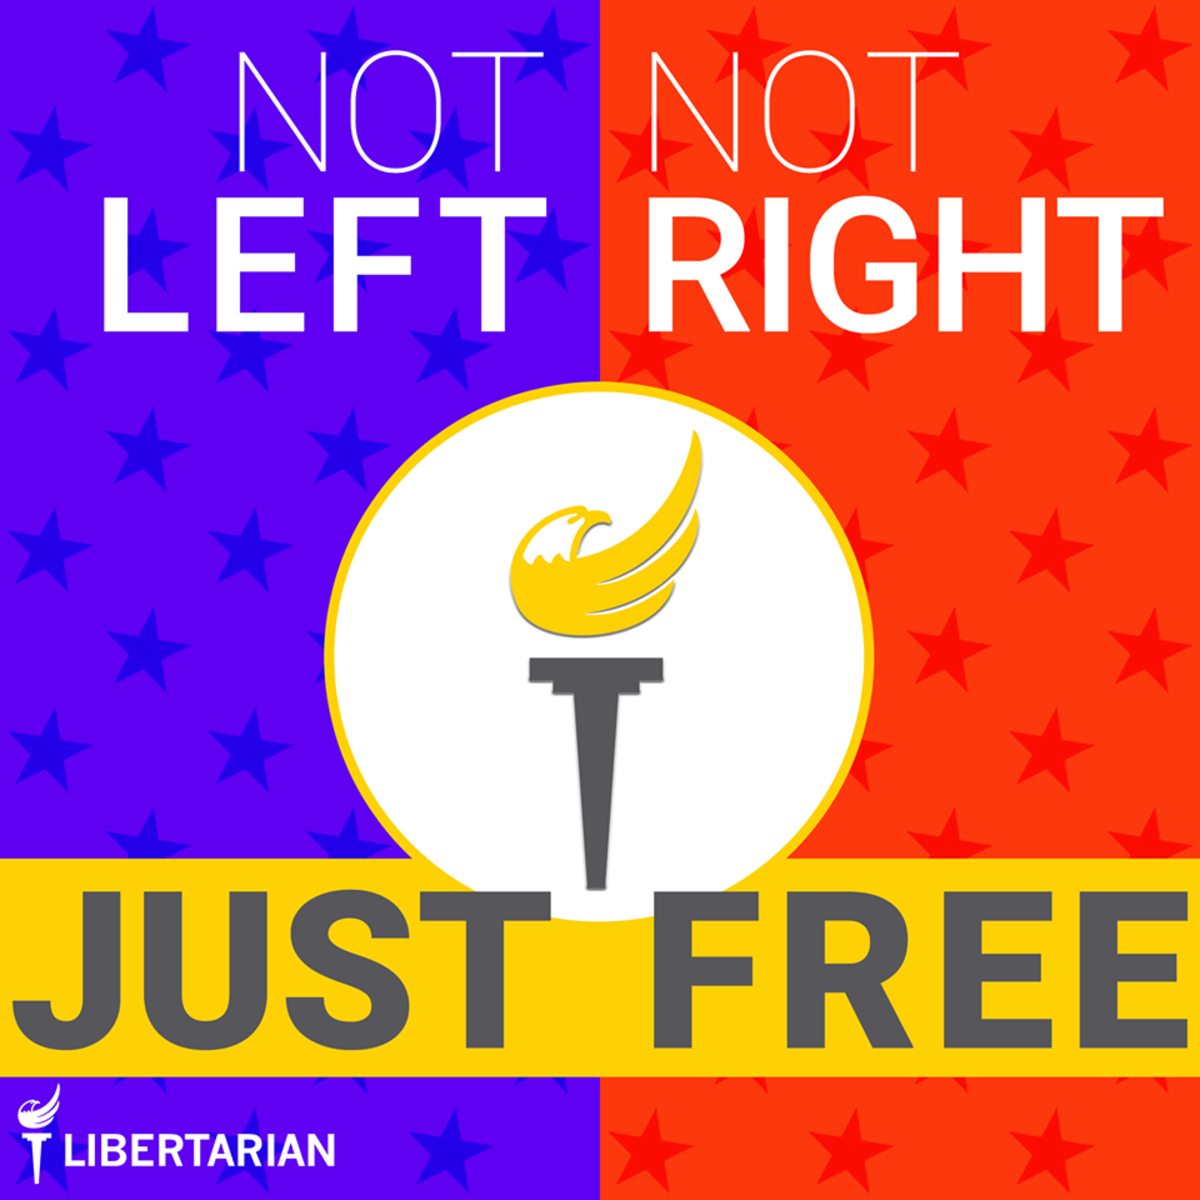 who-are-libertarians-a-look-at-the-libertarian-party